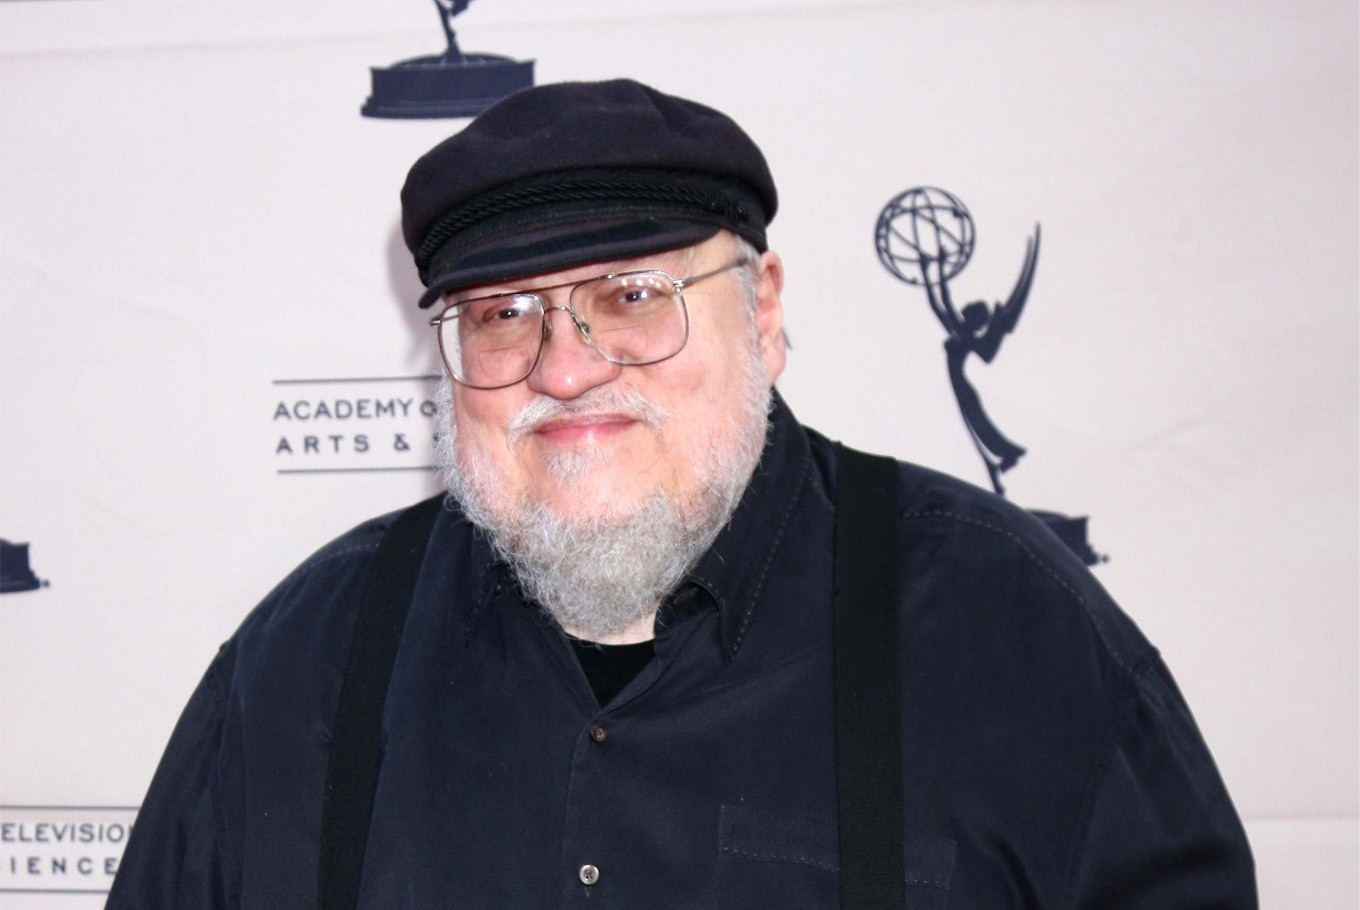 'Winds of Winter' not coming in 2018, 'Thrones' author Martin says